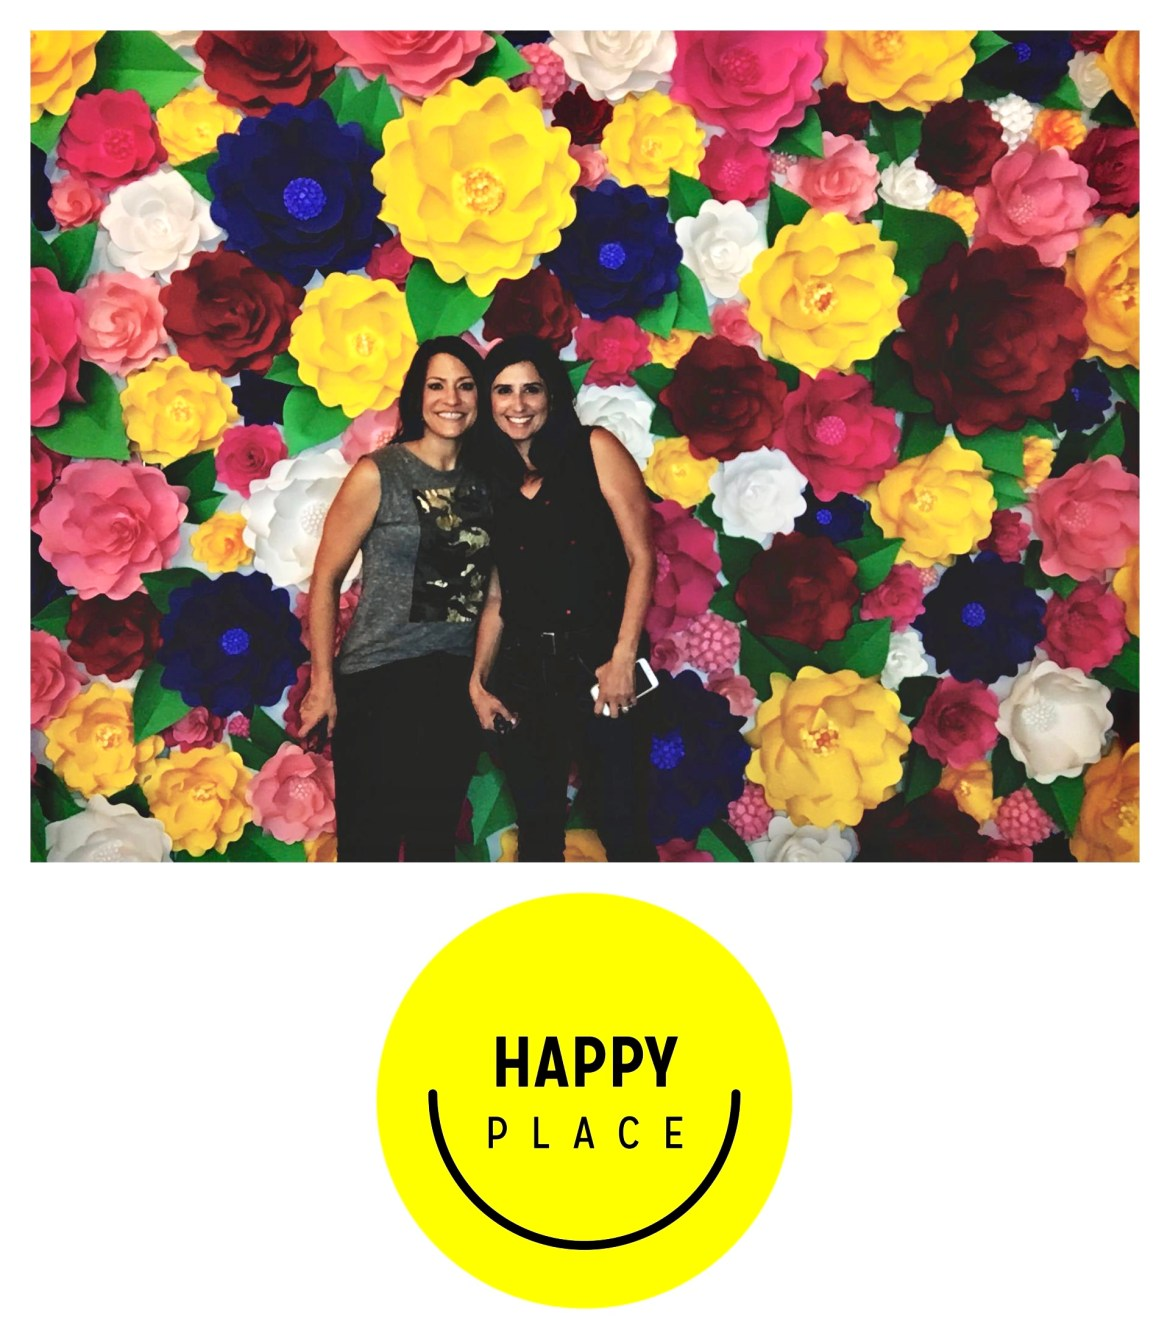 The Happy Place Los Angeles California